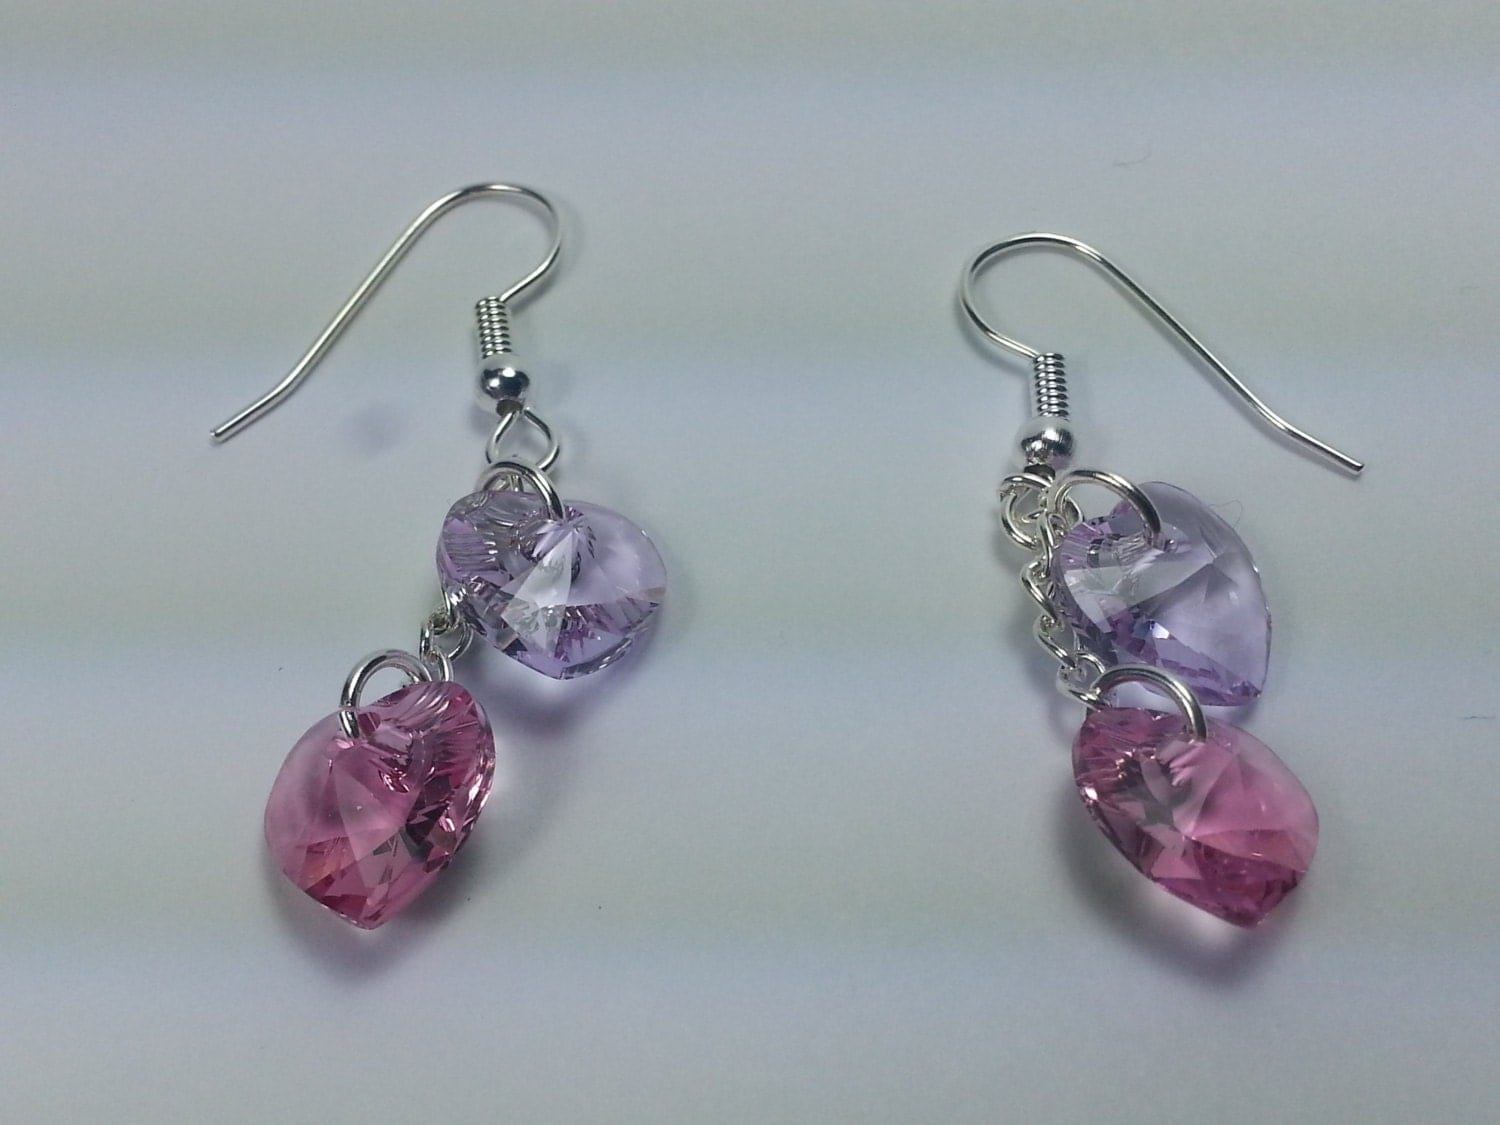 Hearts in Pink and Violet Earrings - AnniesJewelryDezign